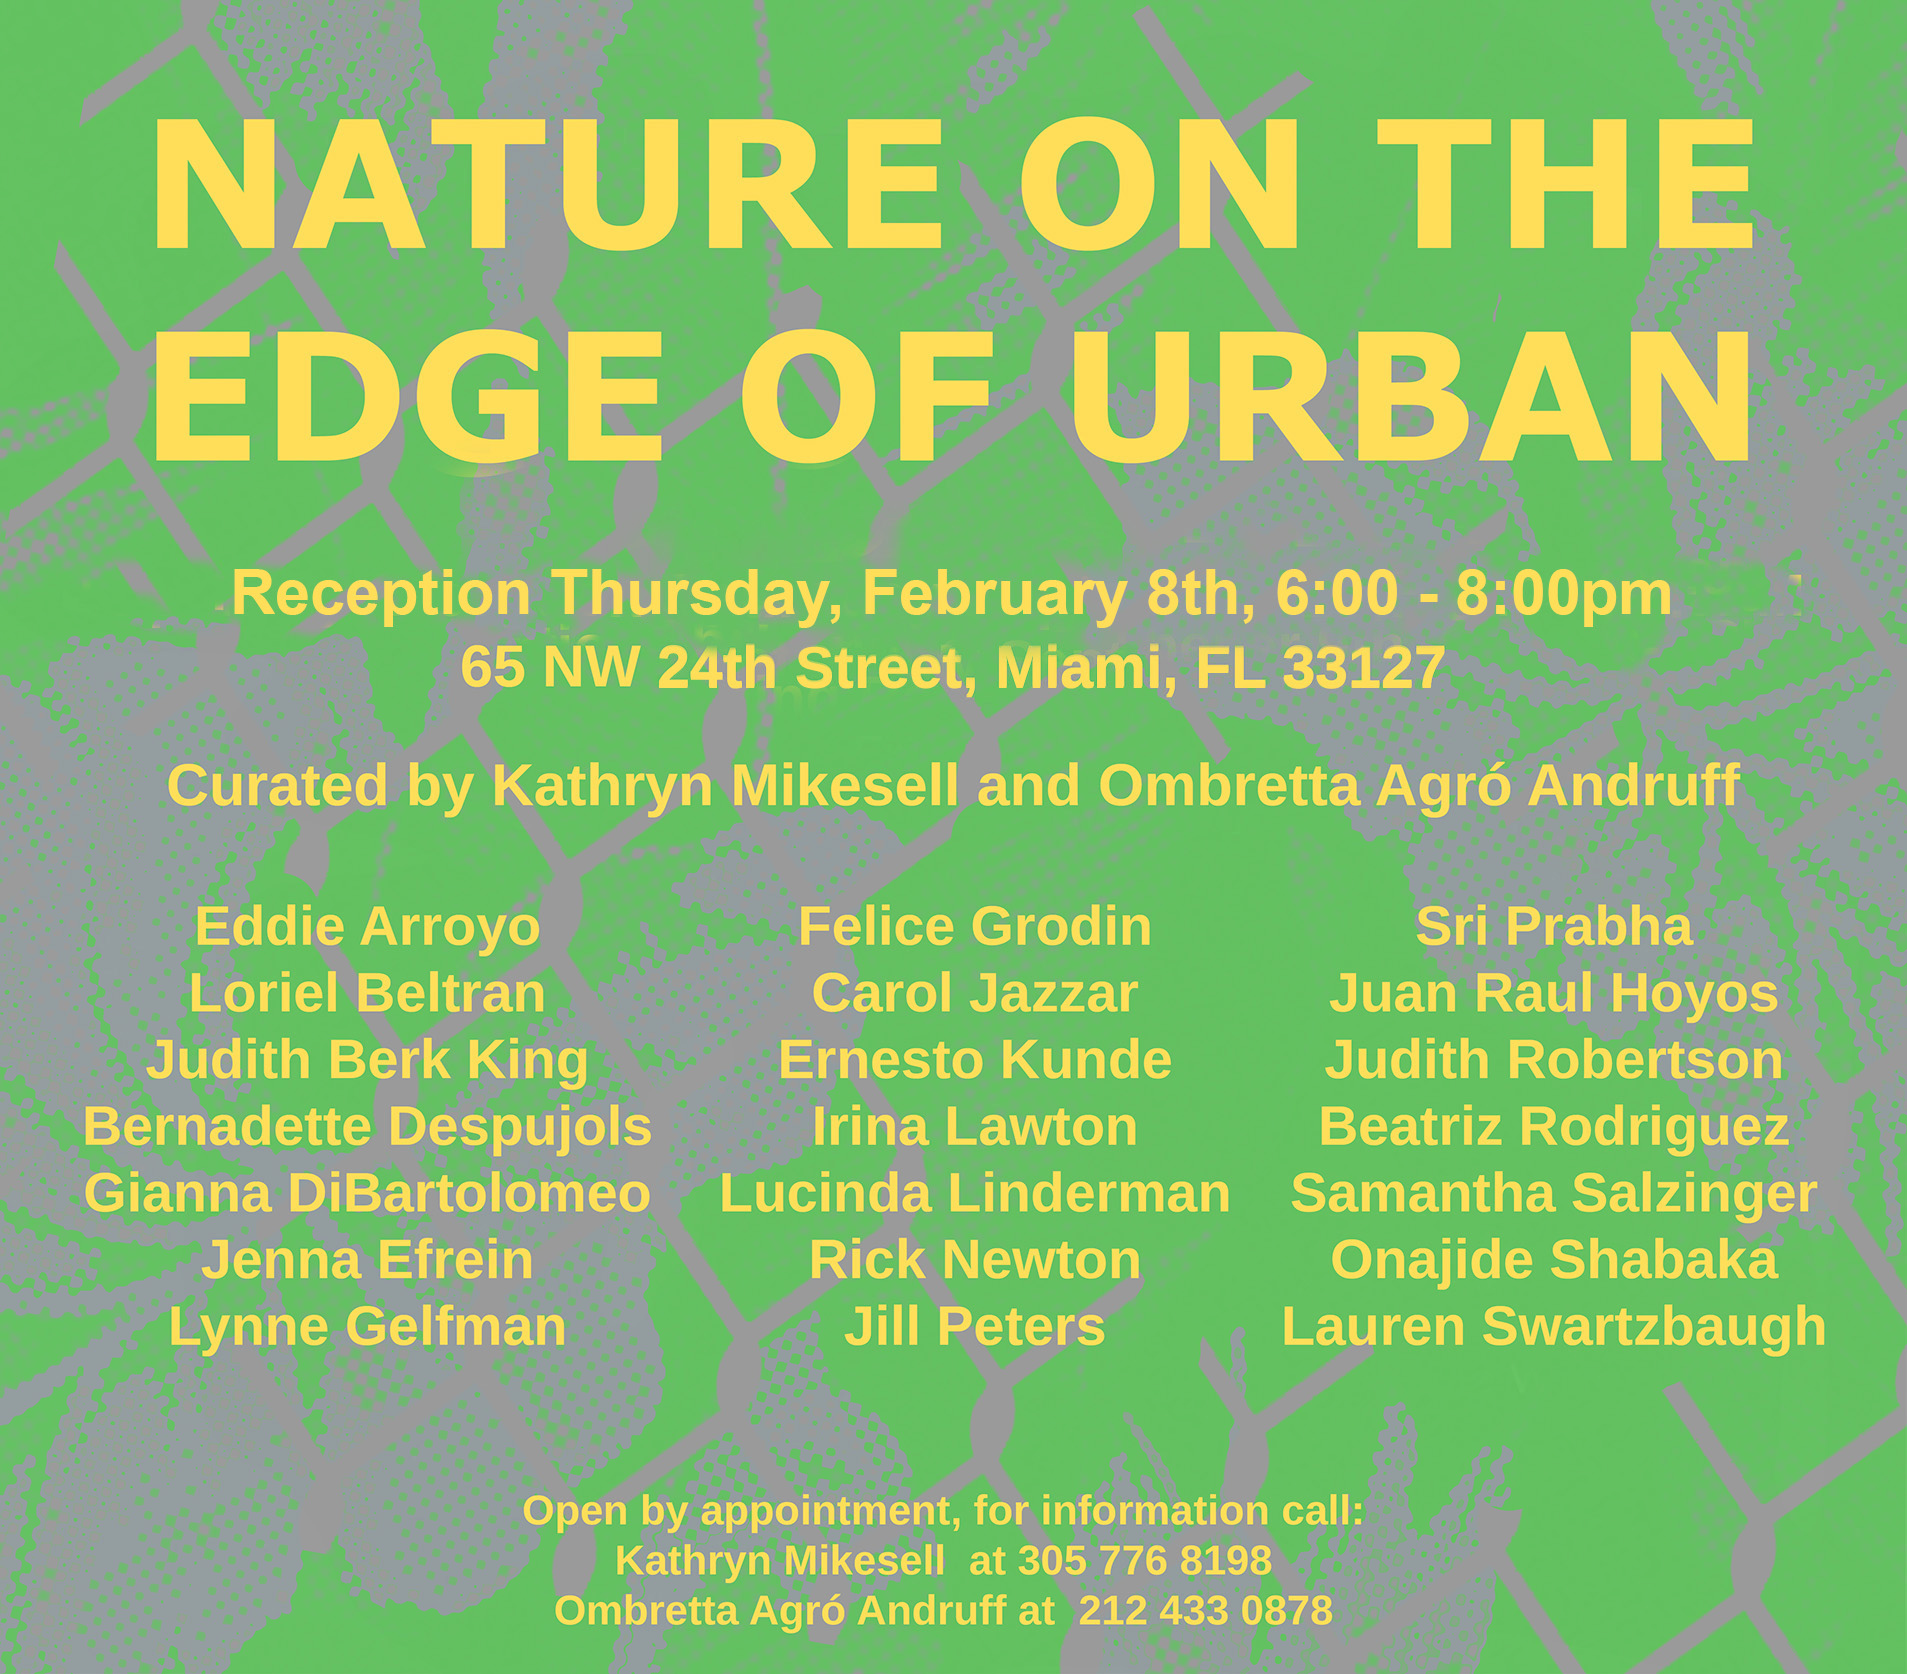 NatureUrbanInvite_February2.jpg